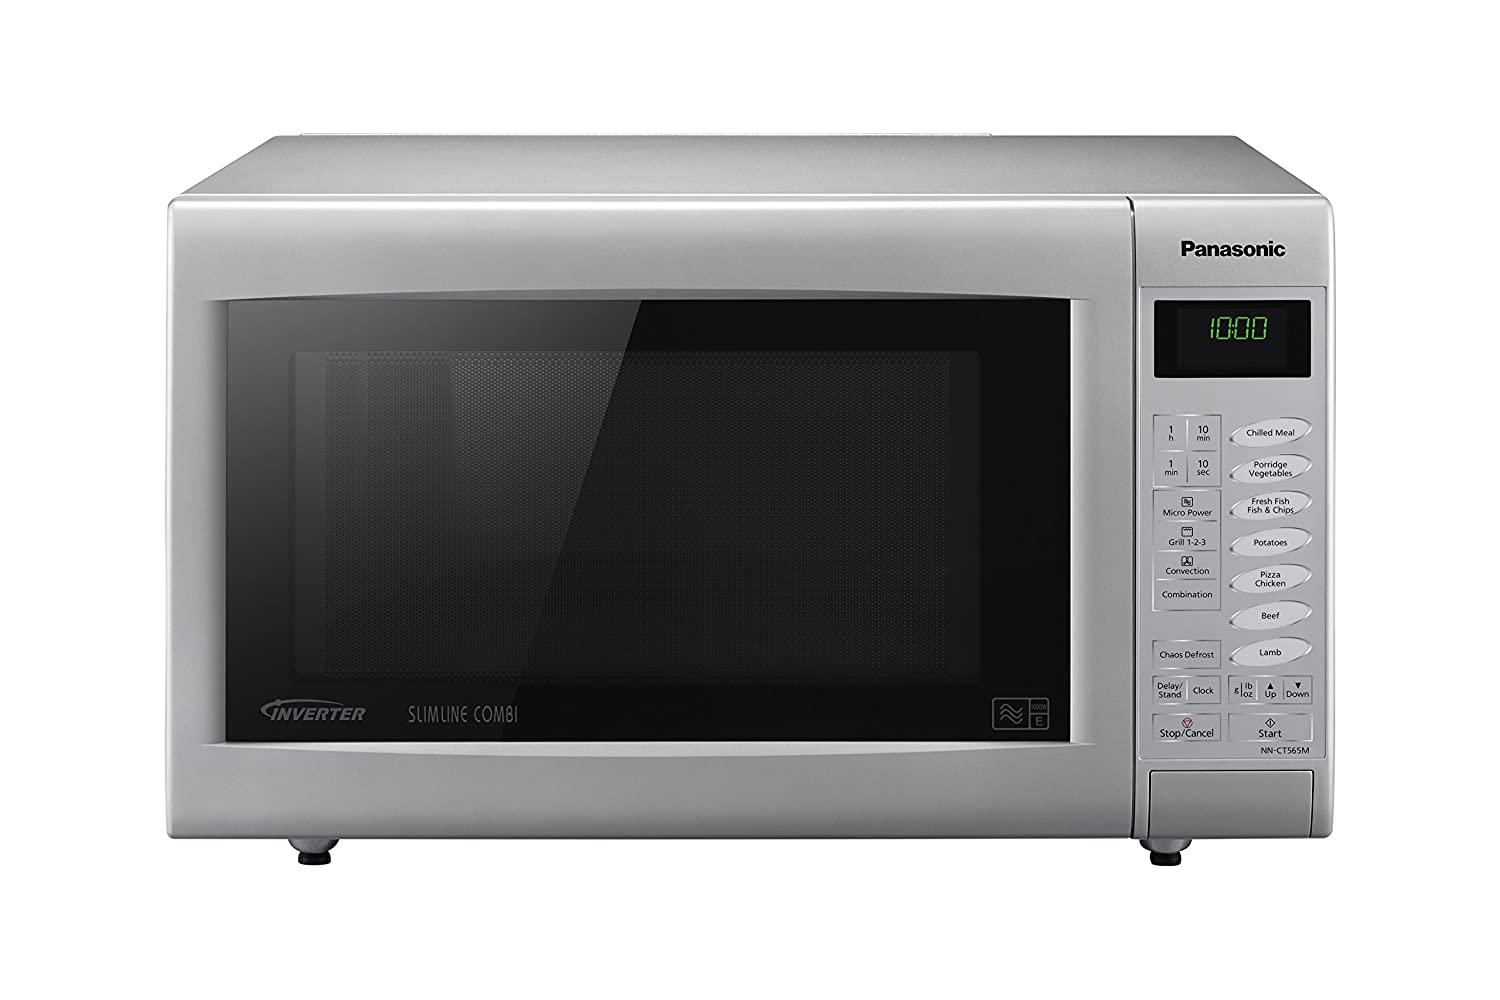 Panasonic NN-CT565MBPQ Slimline Combination Microwave, 27 L - Silver ...